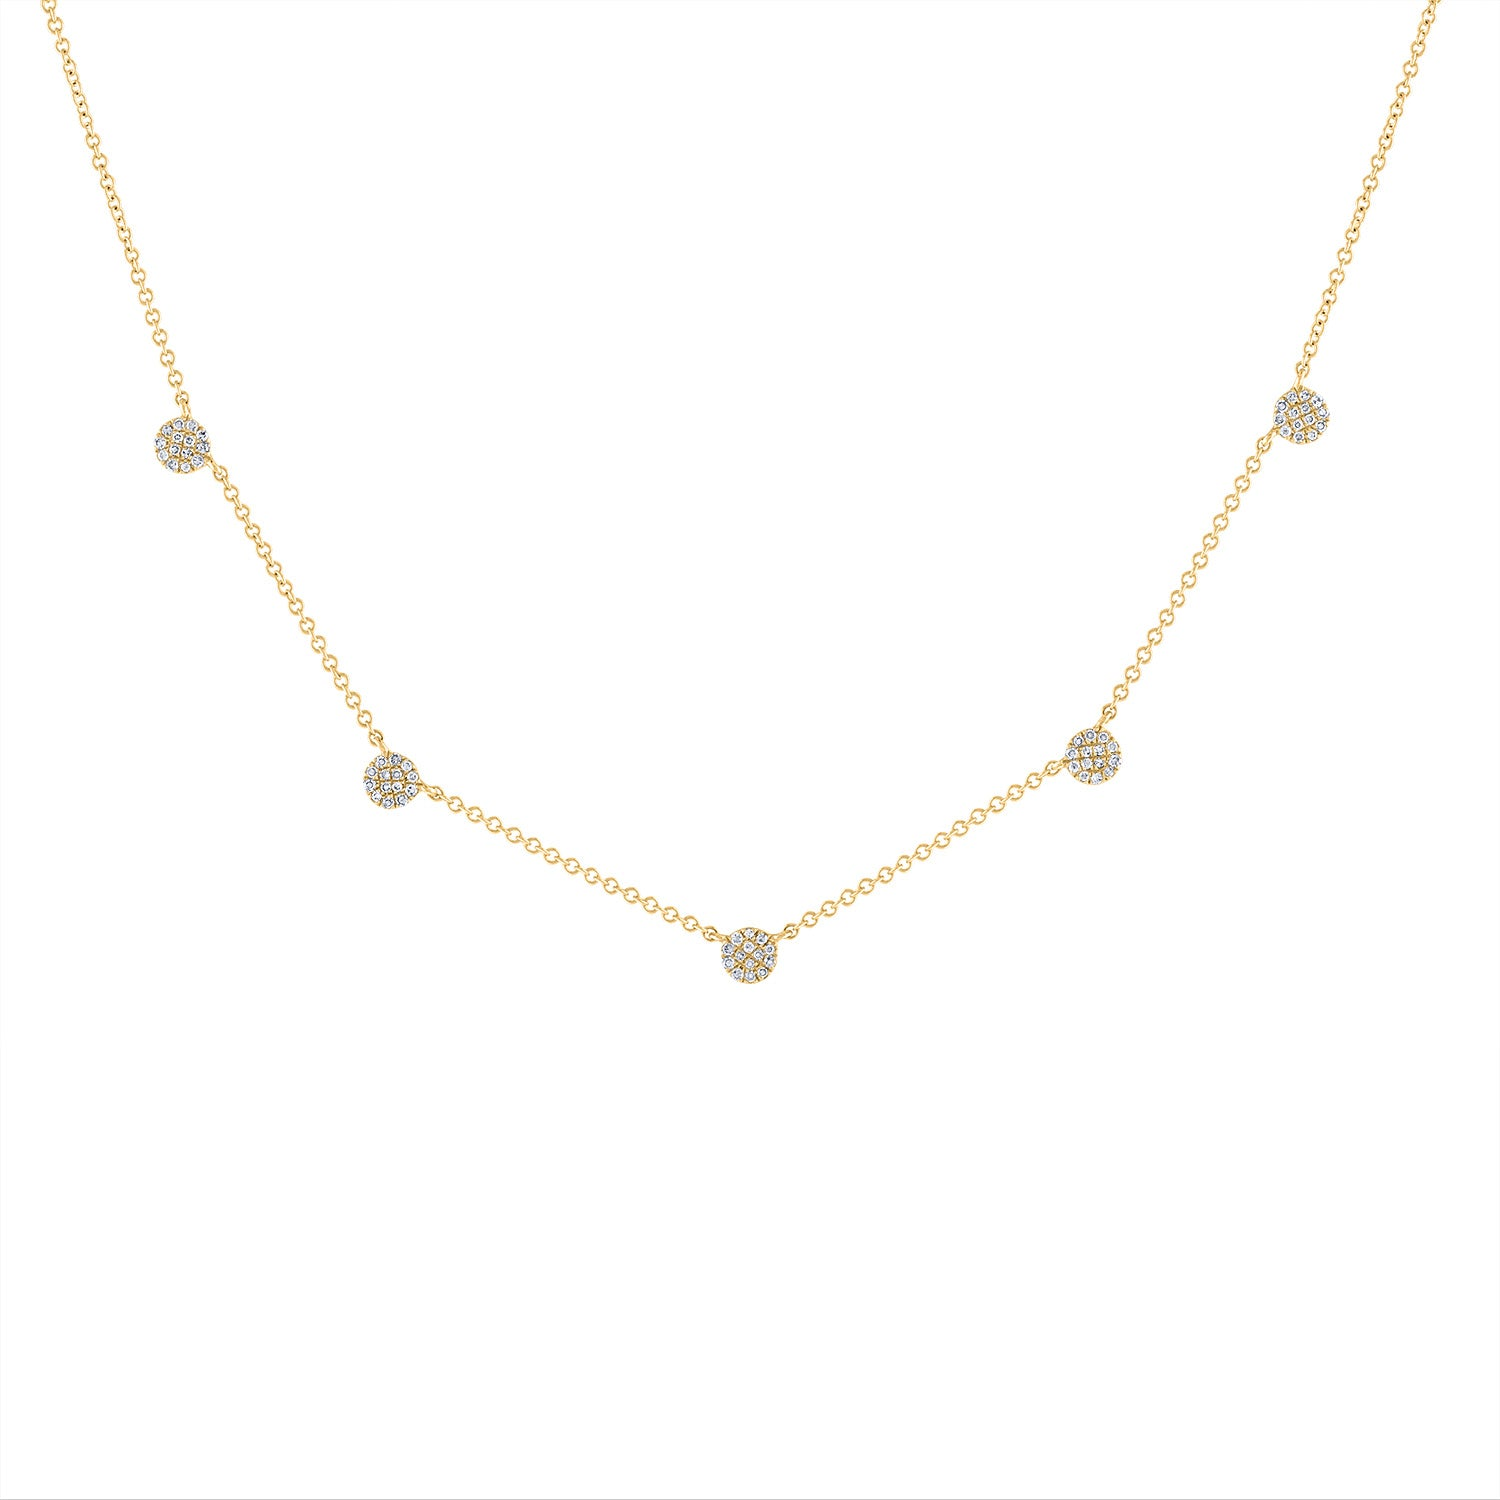 14k Yellow Gold diamond five pave disk necklace